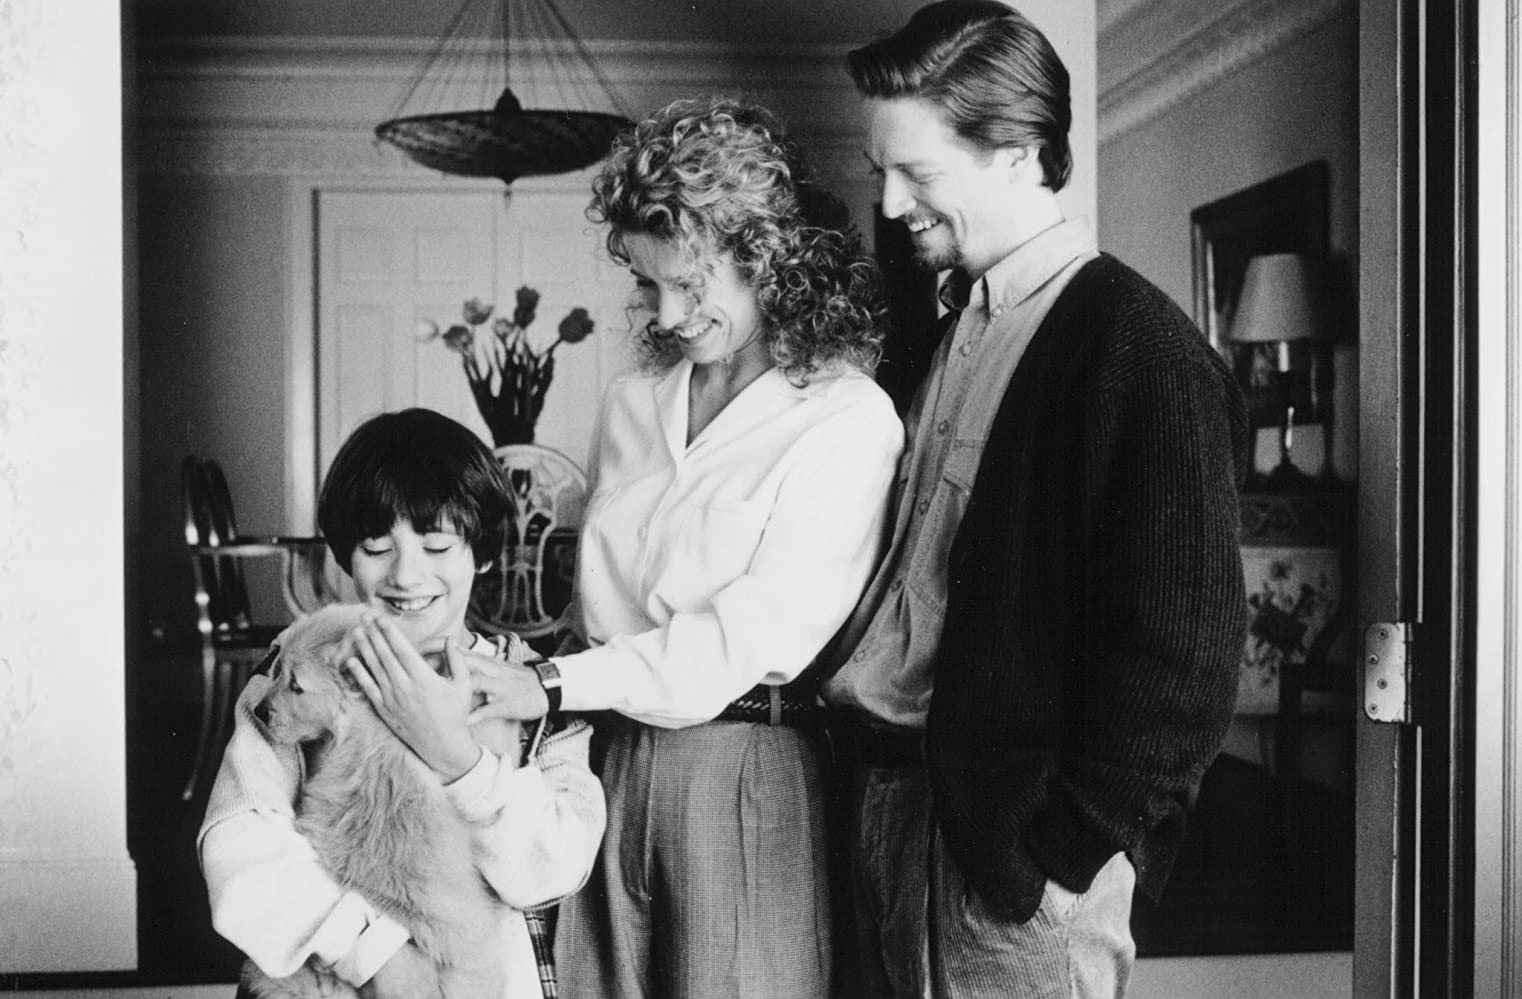 Fluke the puppy with Max Pomeranc, mother Nancy Travis and stepfather Eric Stoltz in Fluke (1995)